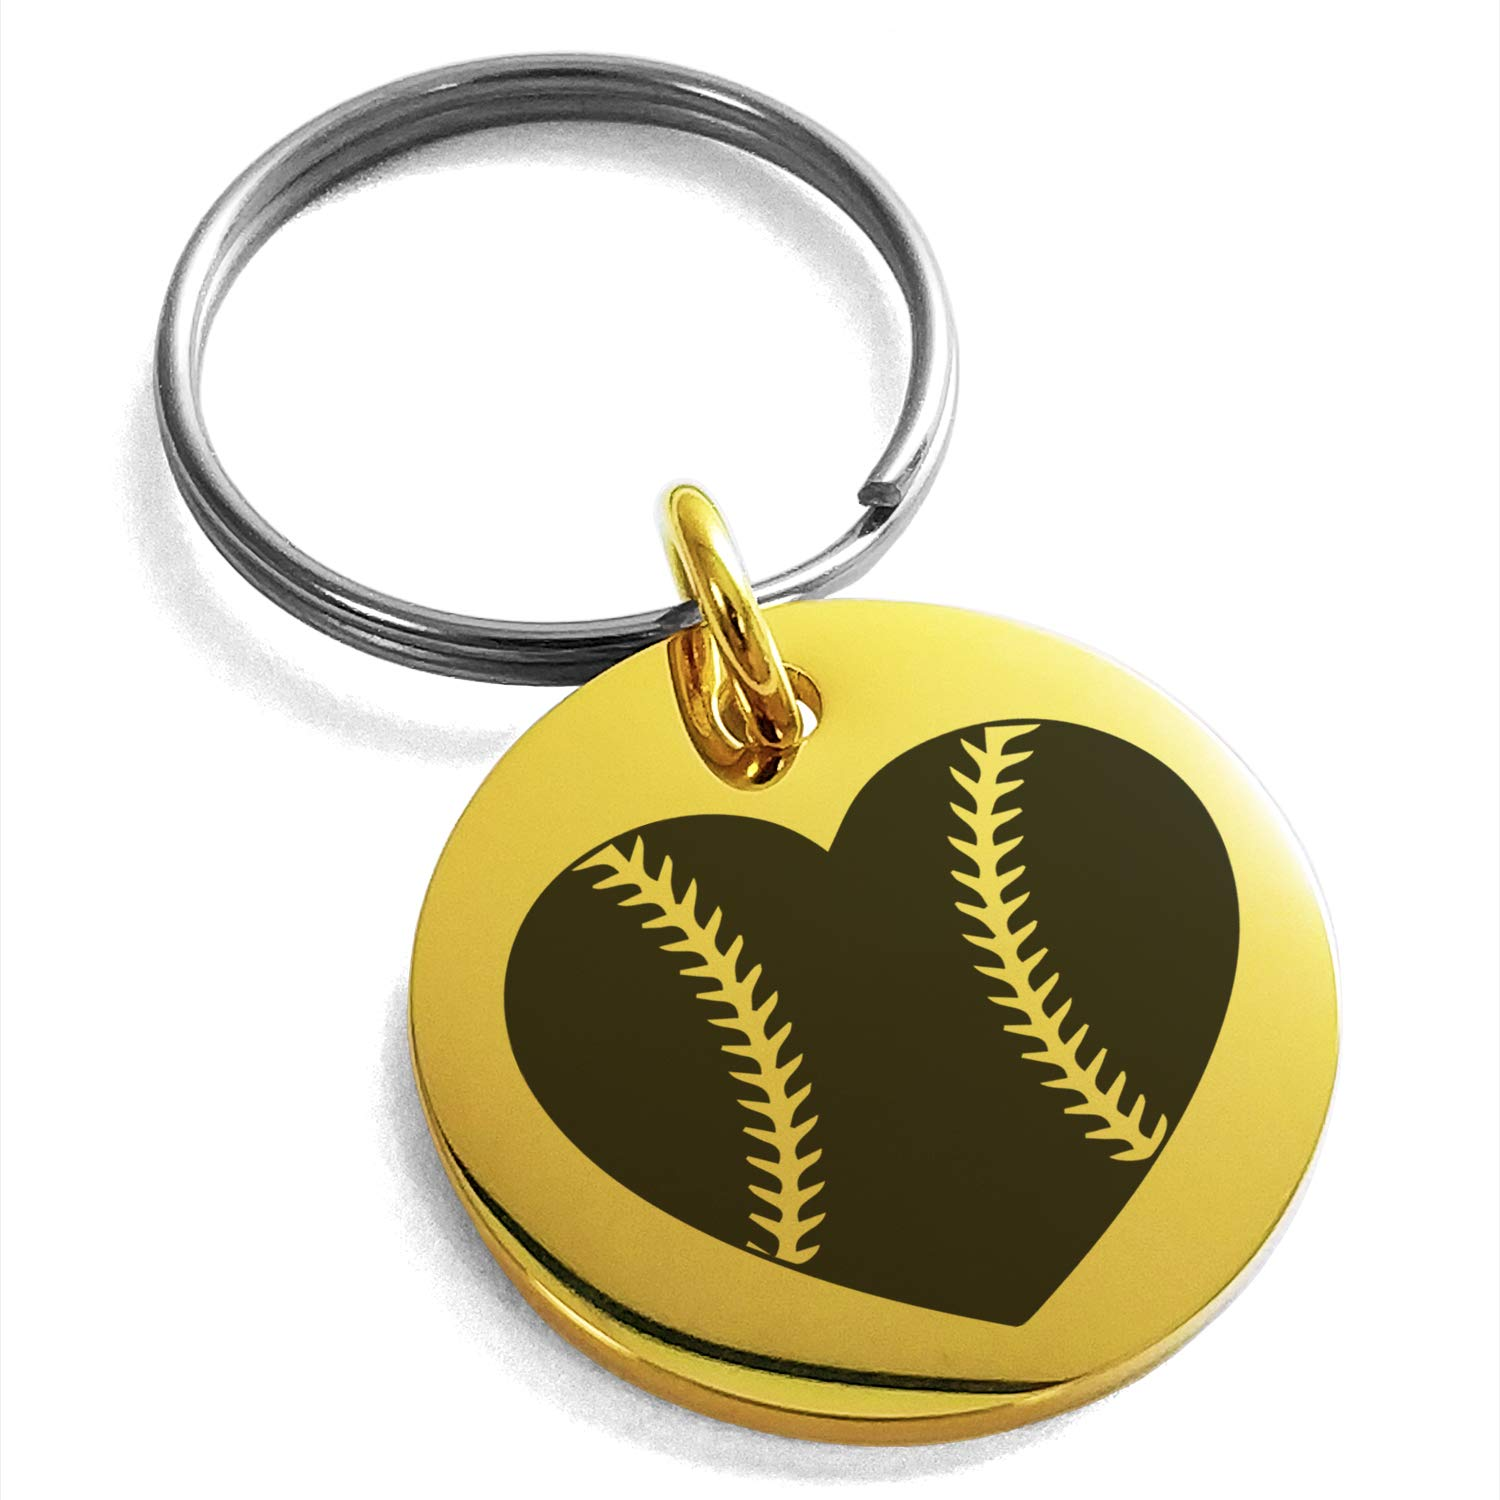 Tioneer Gold Plated Stainless Steel Love Baseball Heart Engraved Small Medallion Circle Charm Keychain Keyring